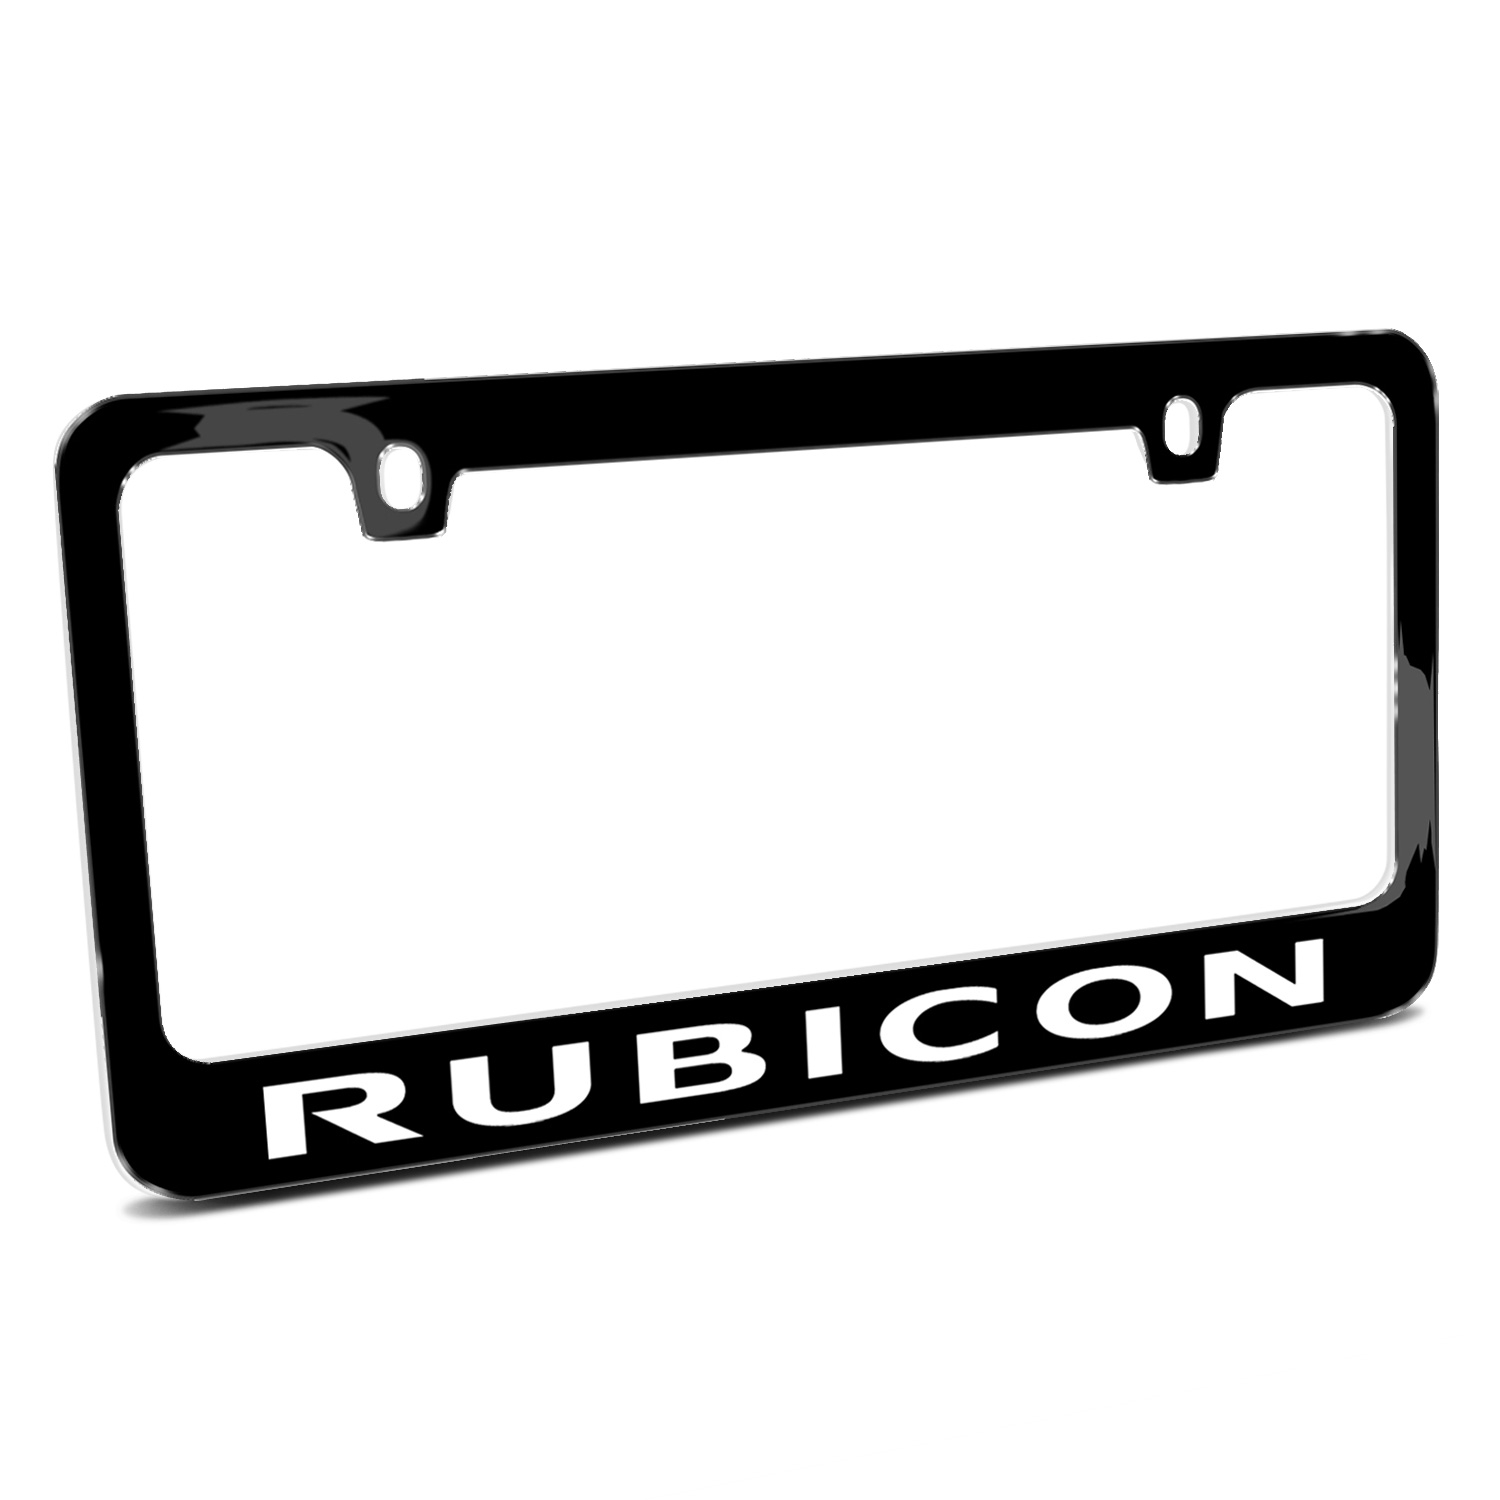 Jeep Rubicon Black Metal License Plate Frame